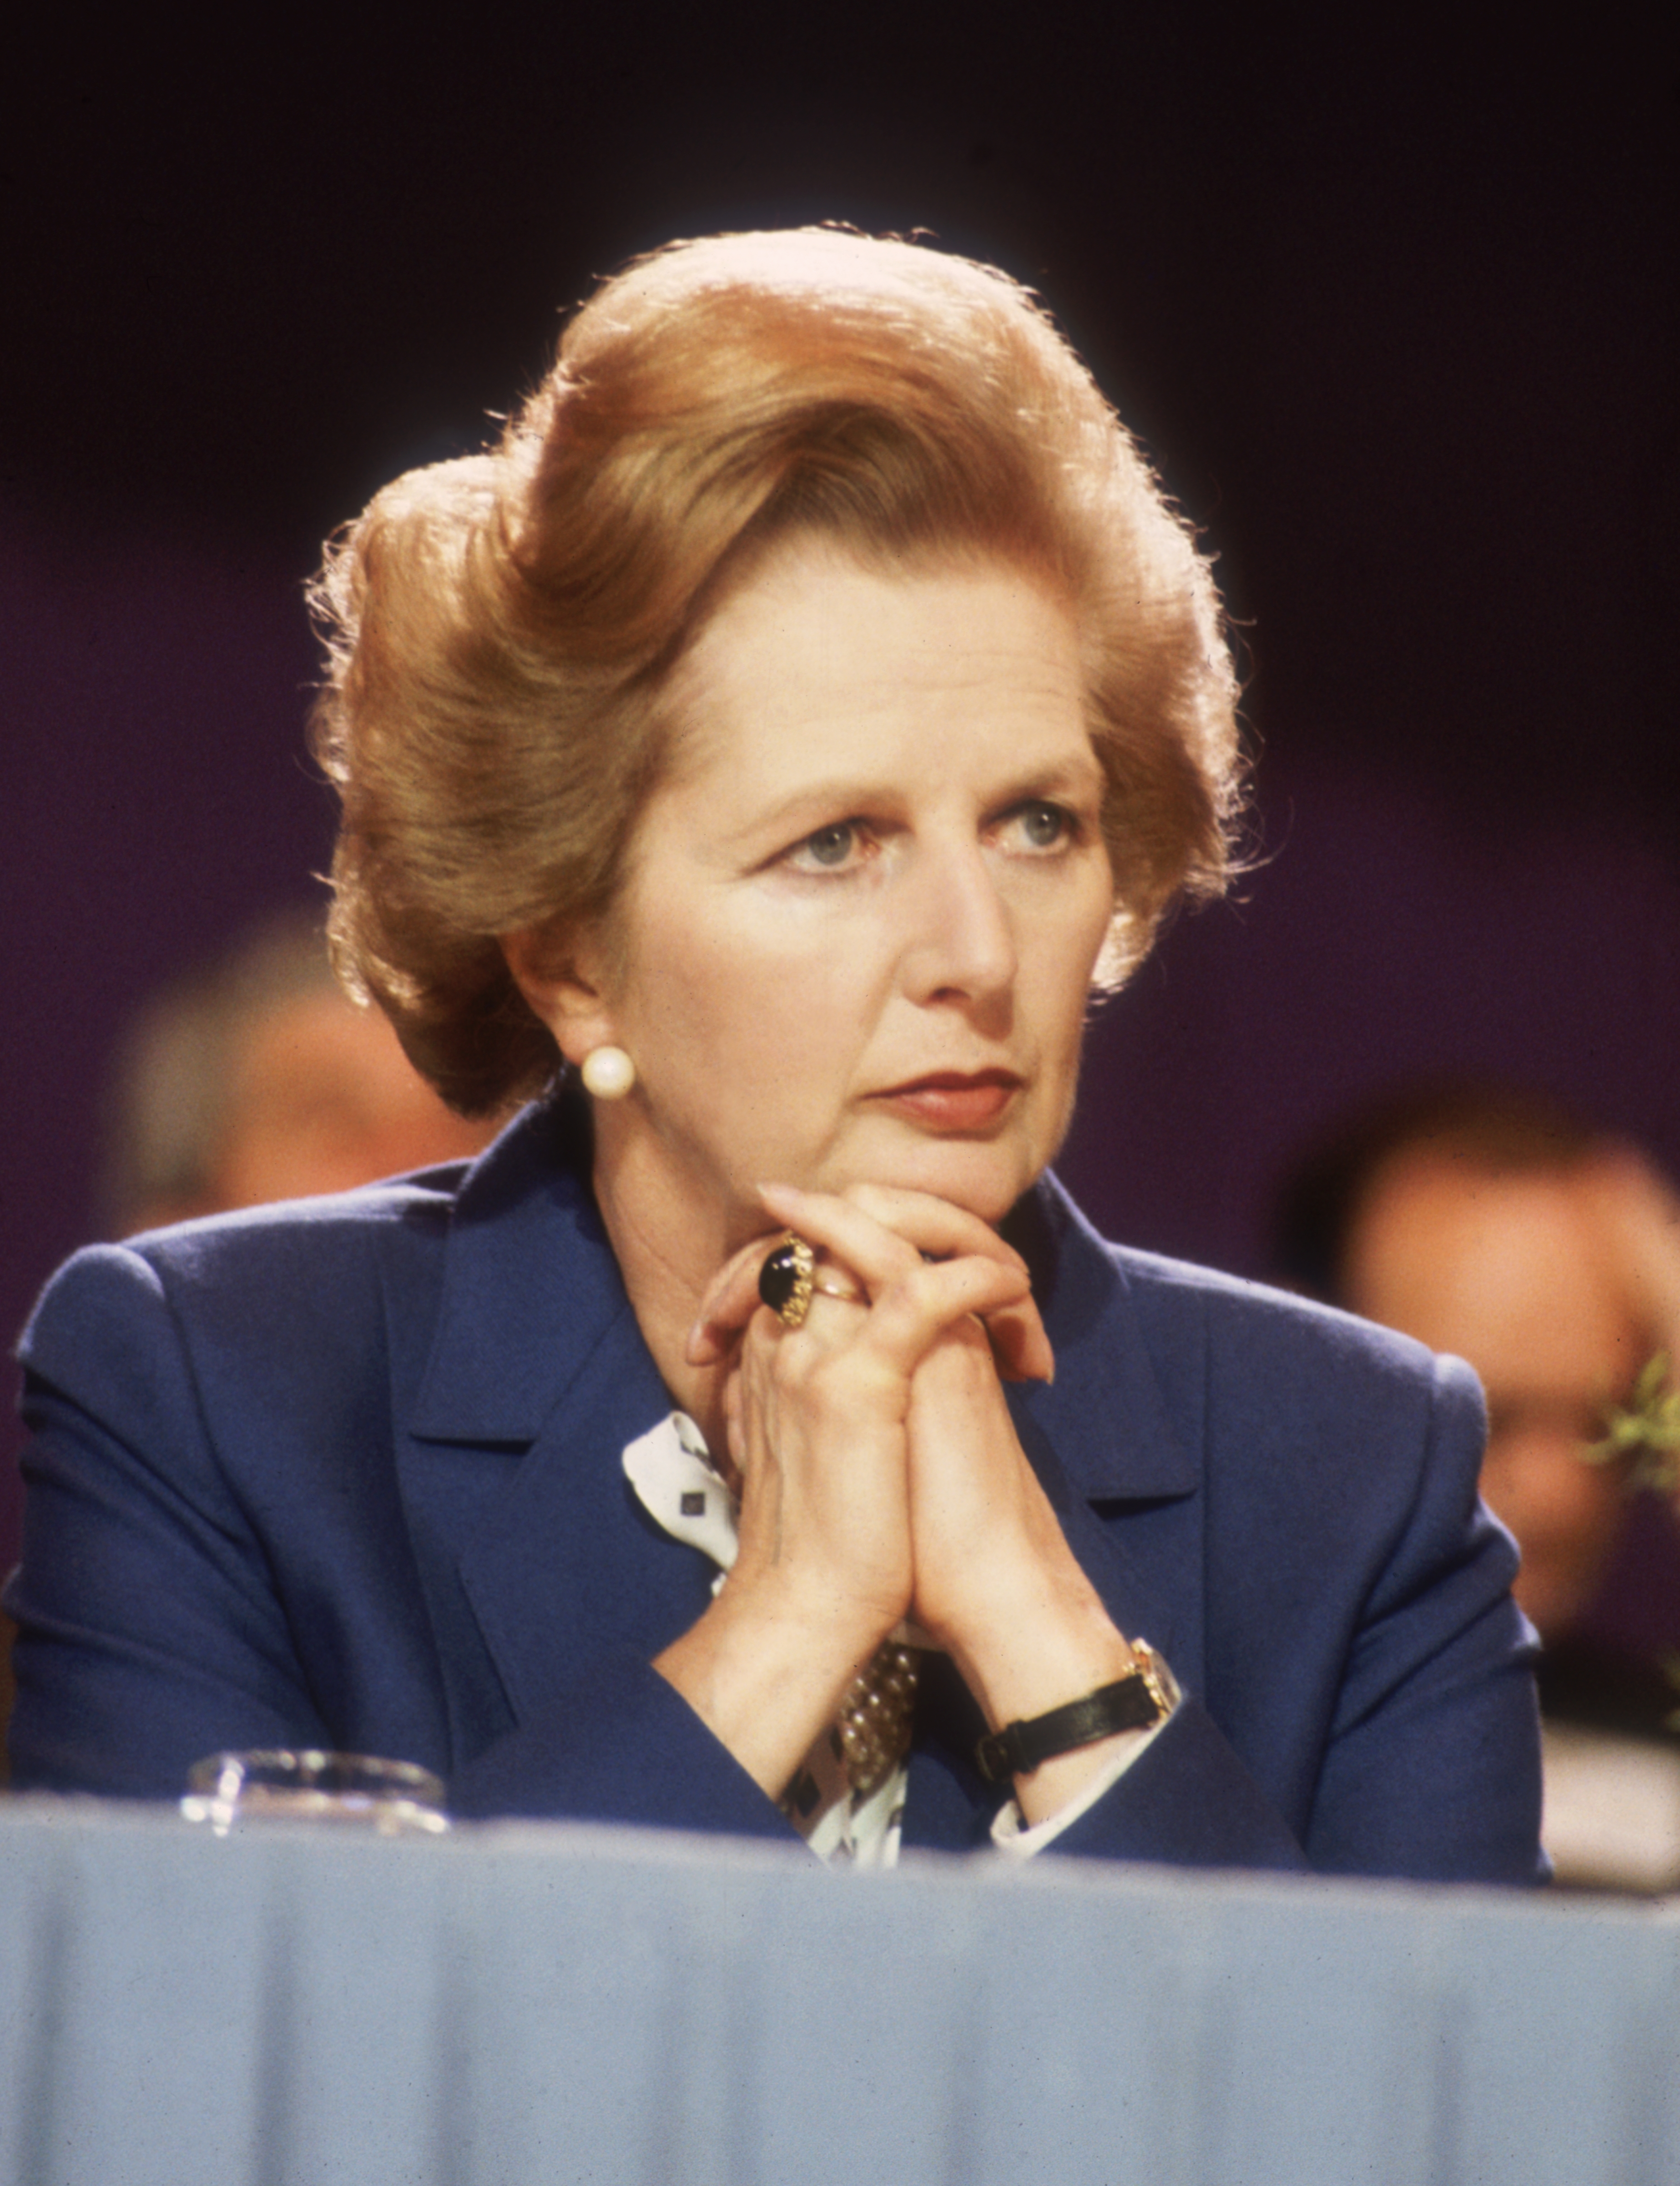 Image search: Margaret Thatcher